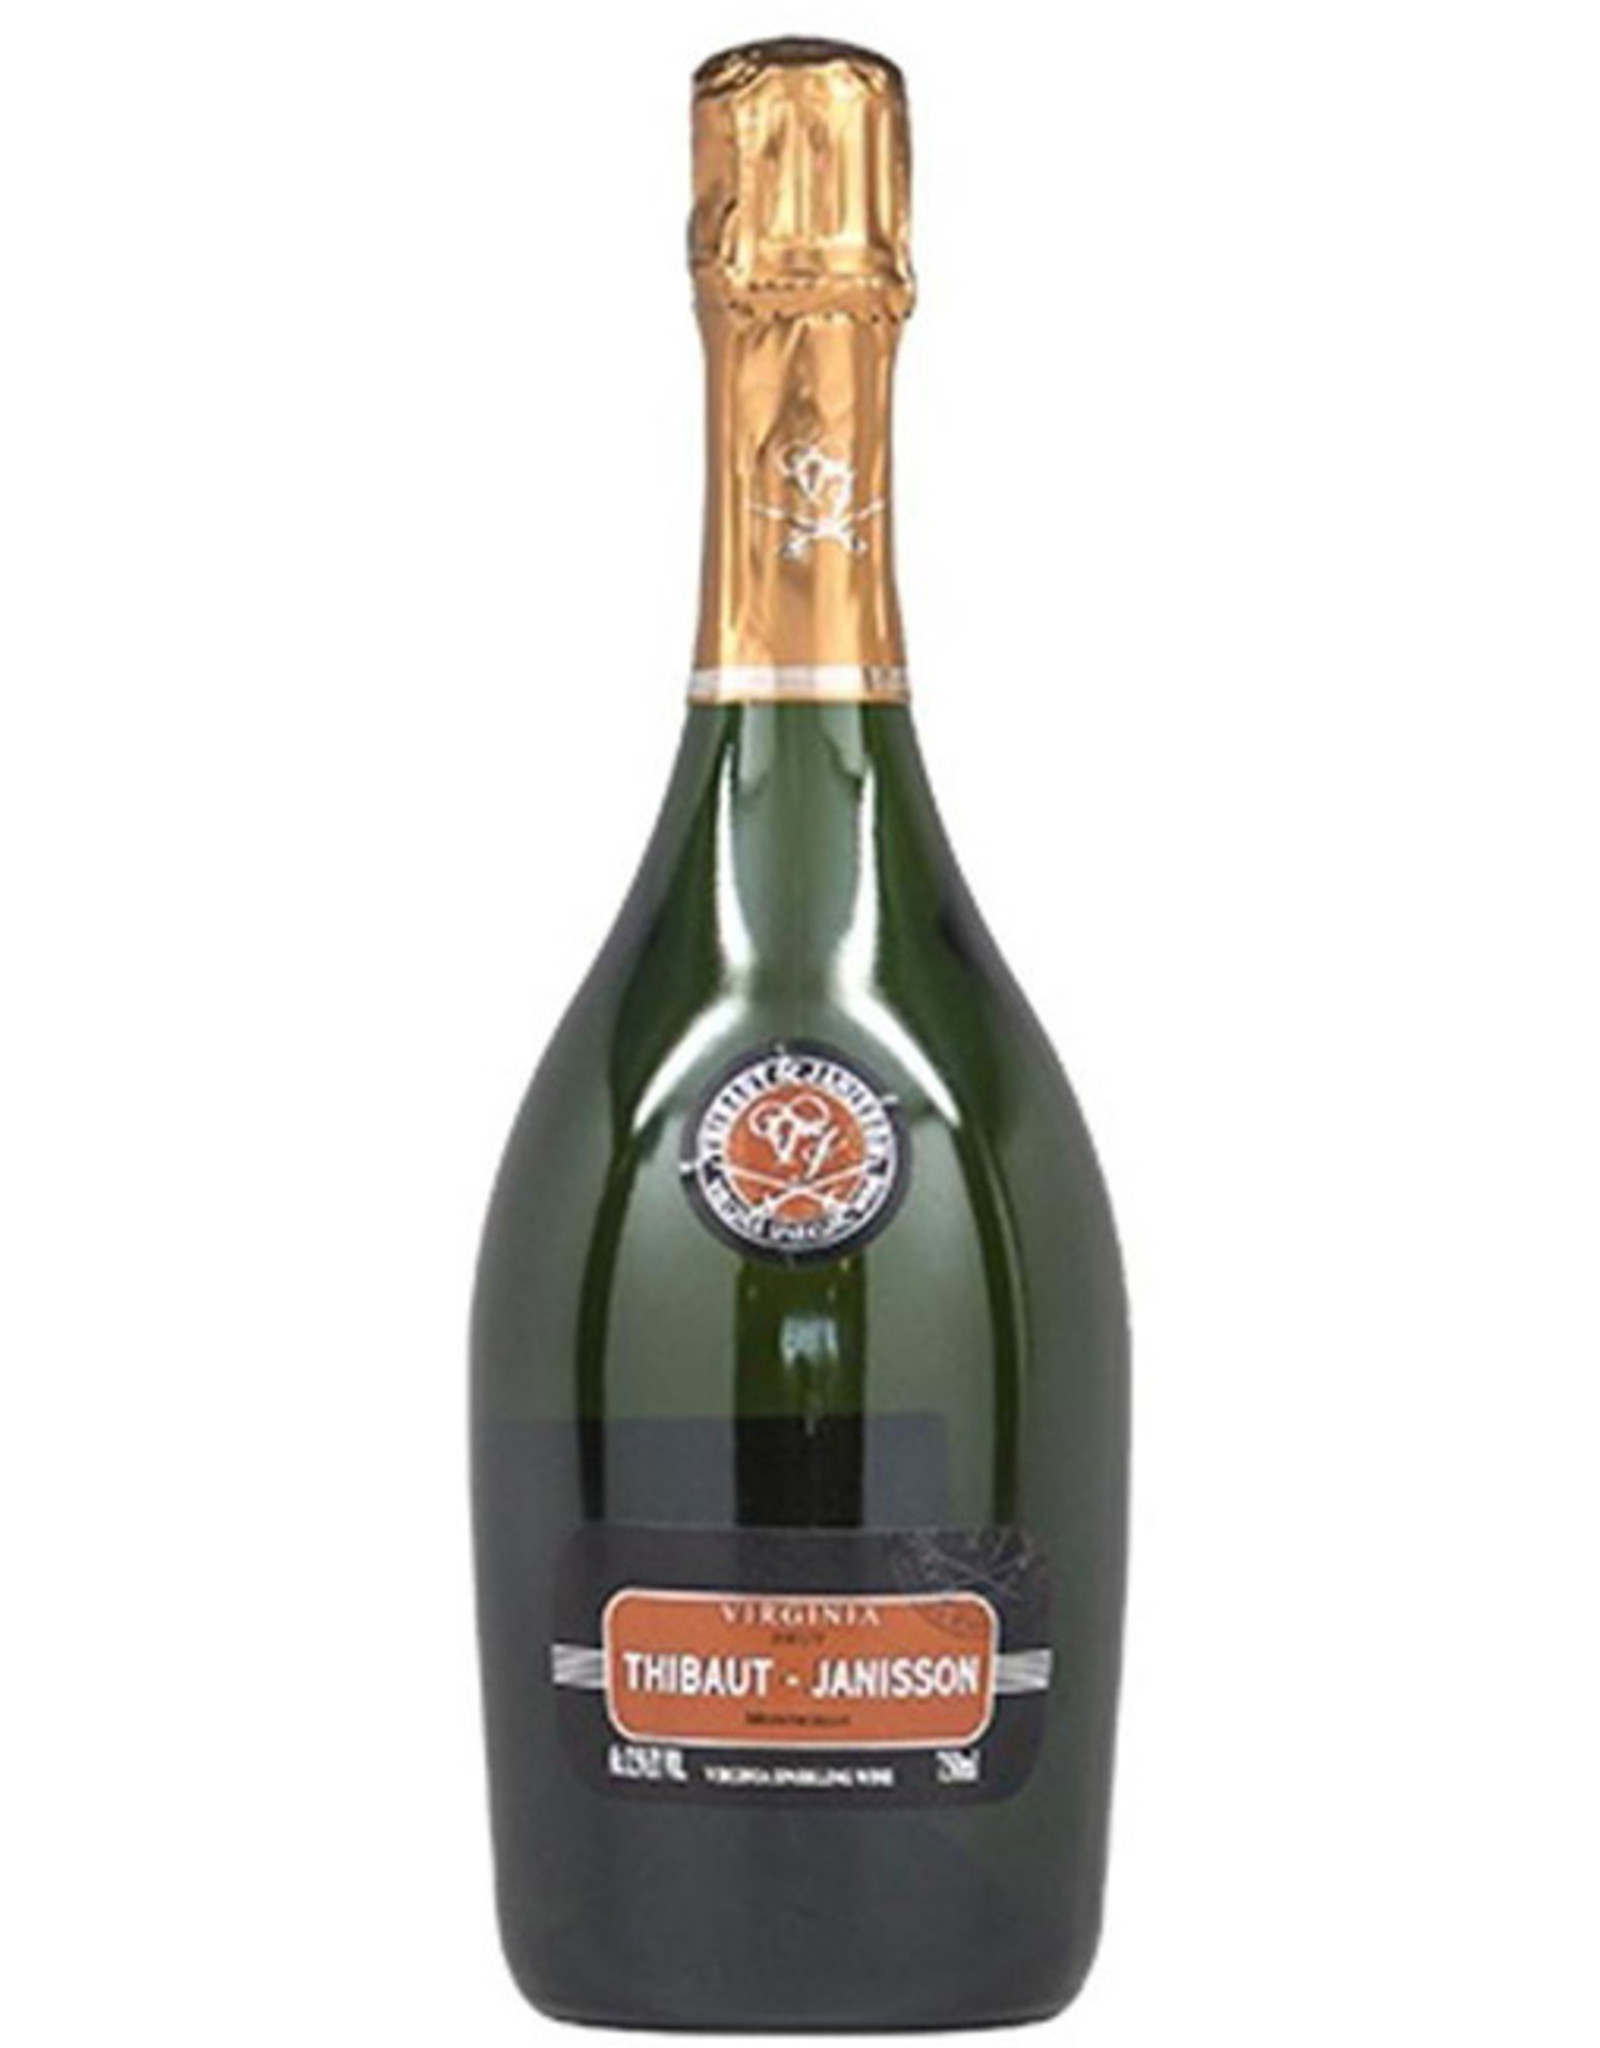 Thibaut Janisson Virginia Brut